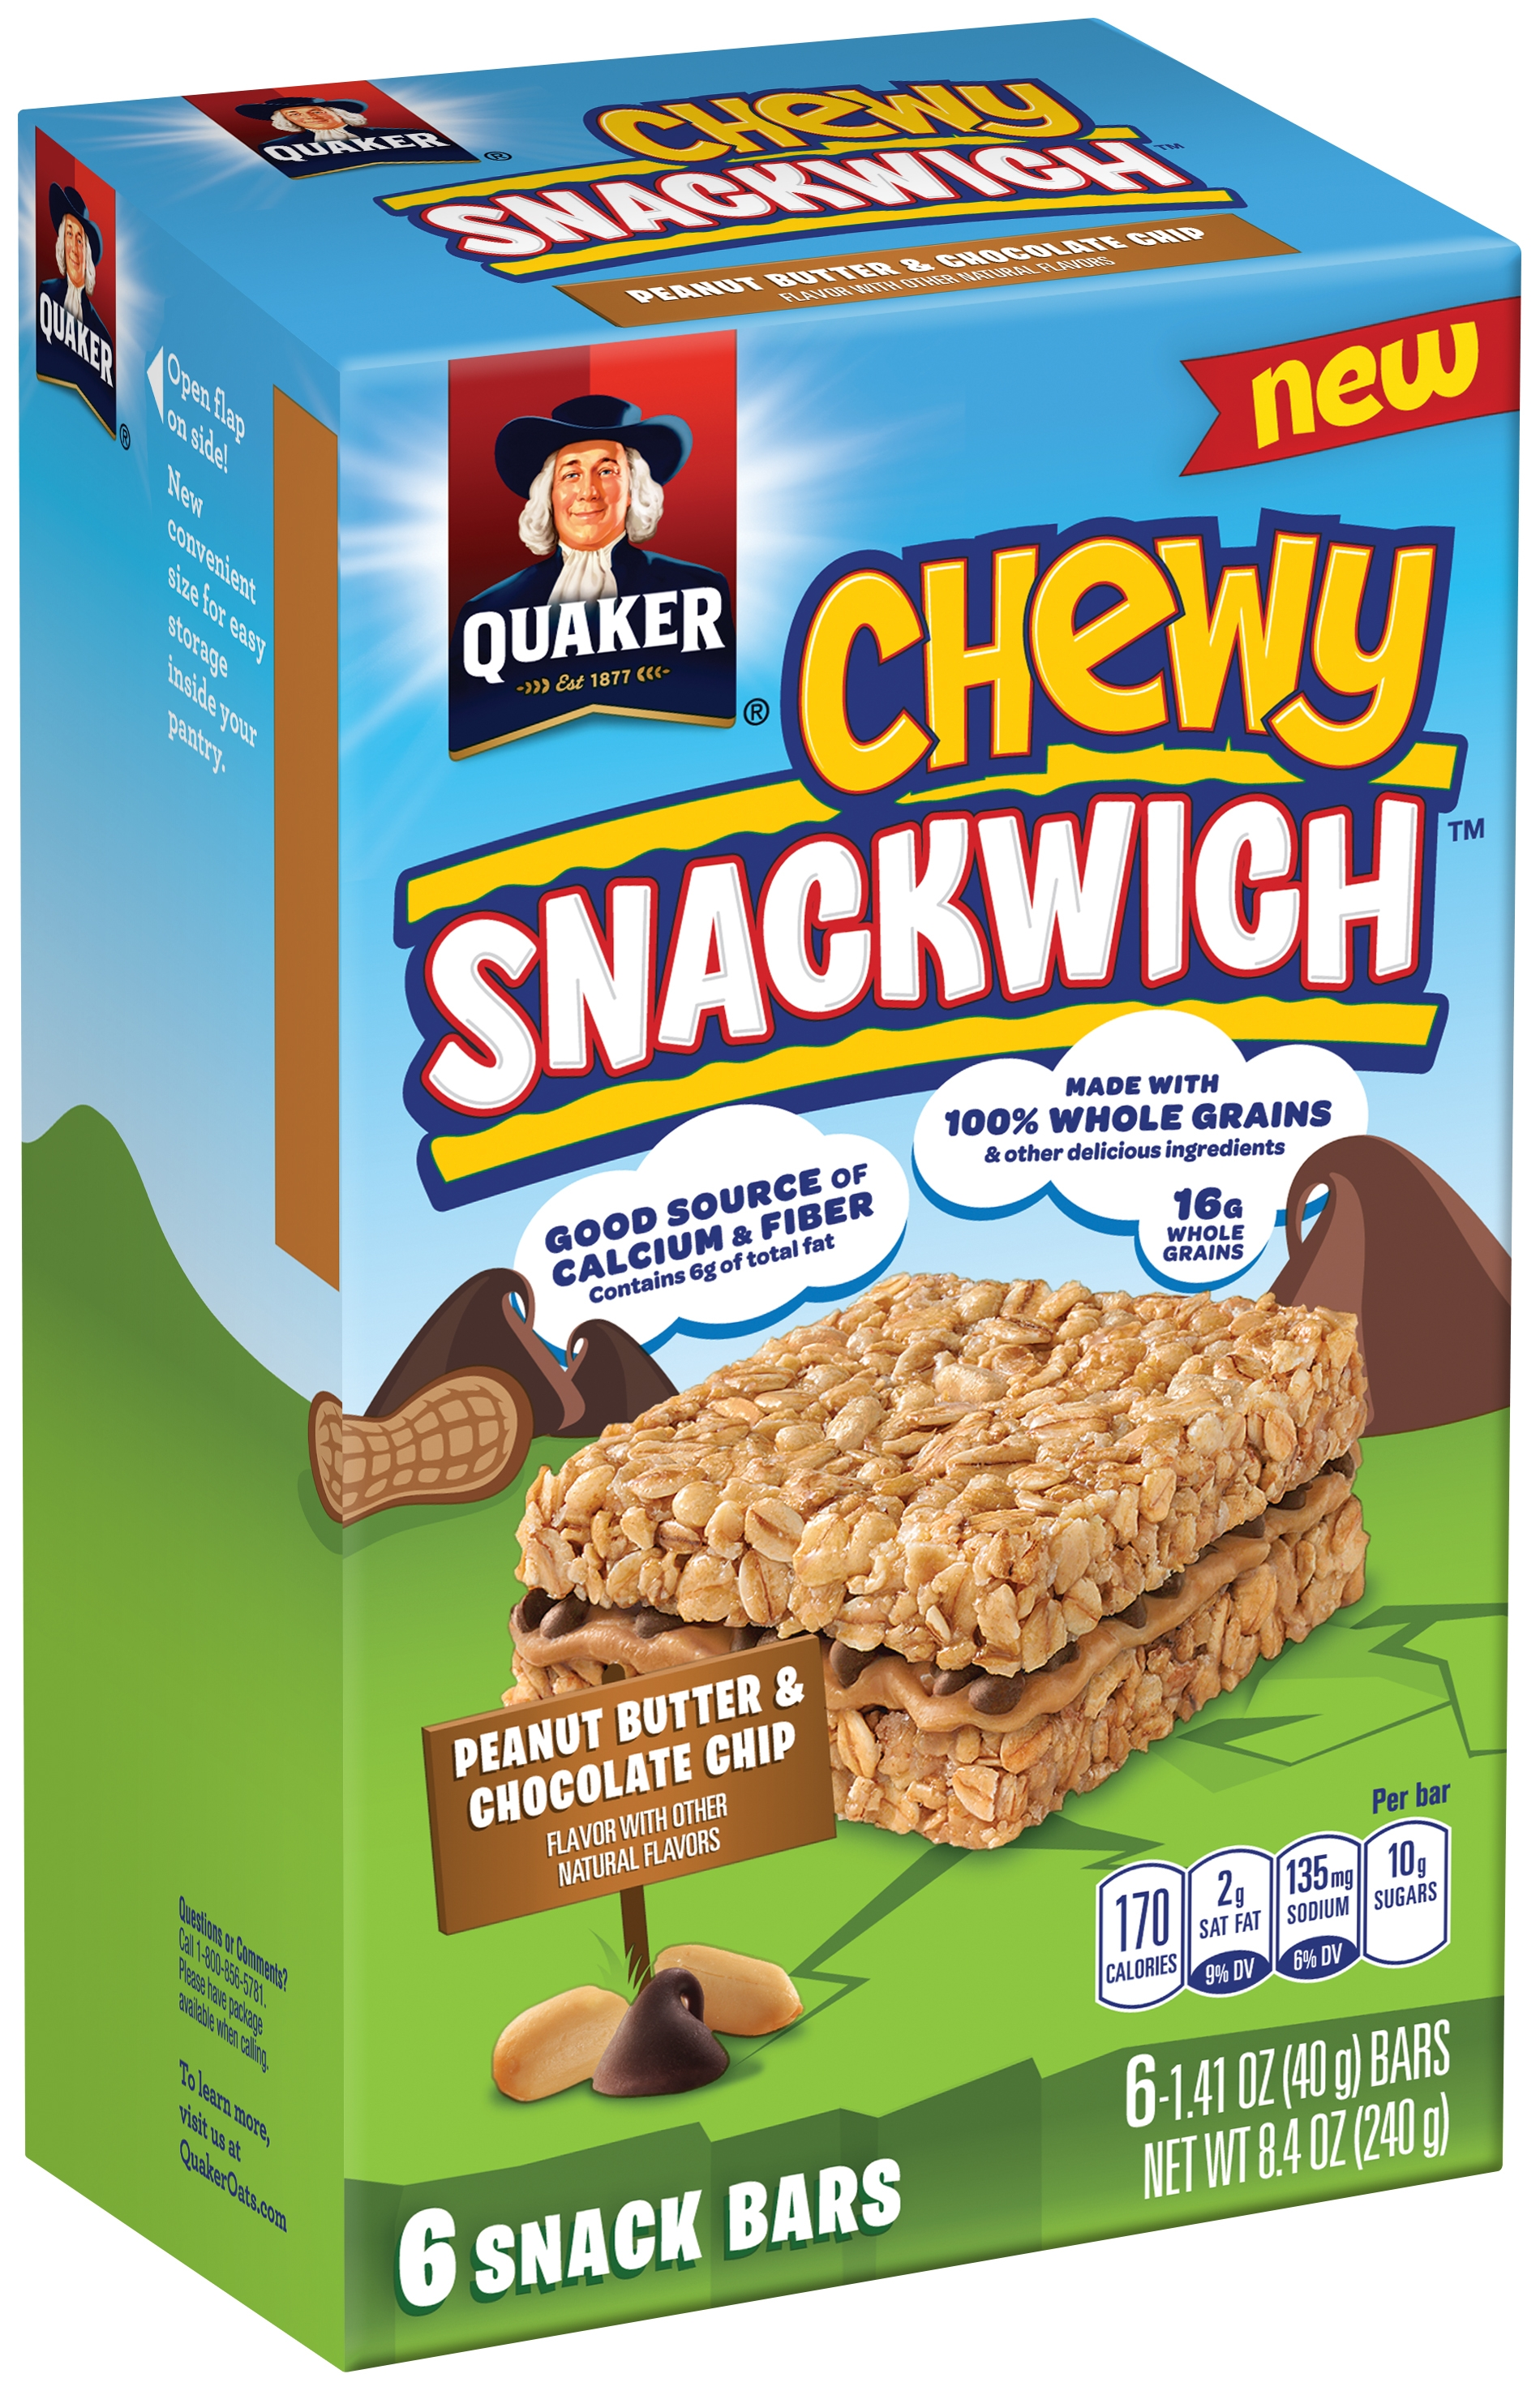 Quaker Chewy Snackwich Peanut Butter & Chocolate Chips Snack Bars 6 Count